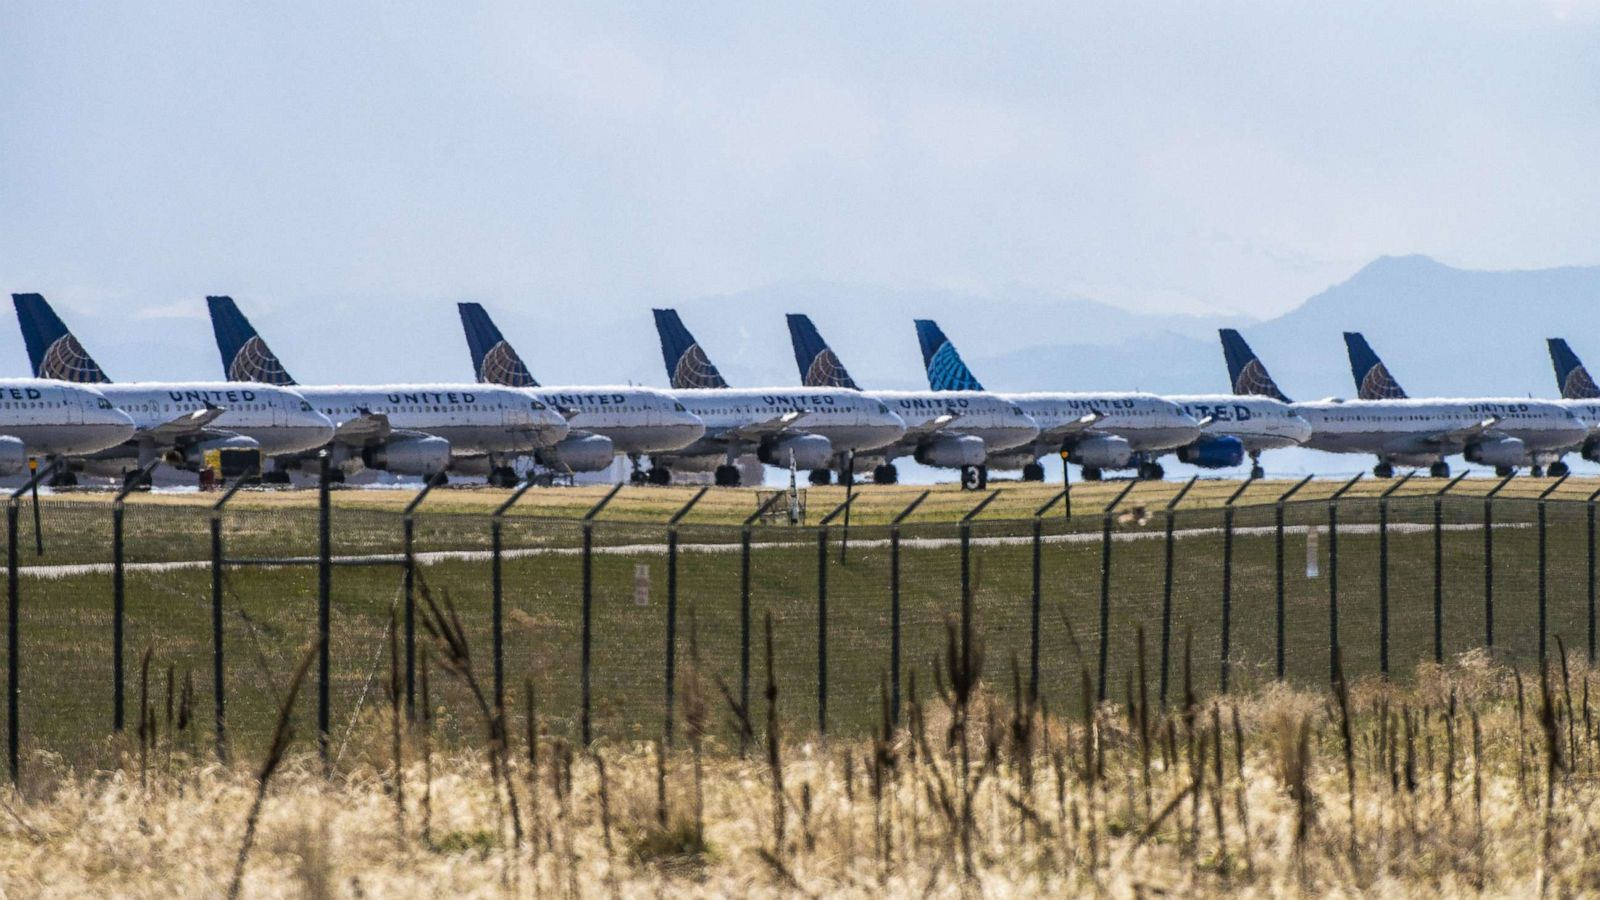 Airlines Working To Ensure Thousands Of Parked Planes Are Ready To Fly Again Abc News